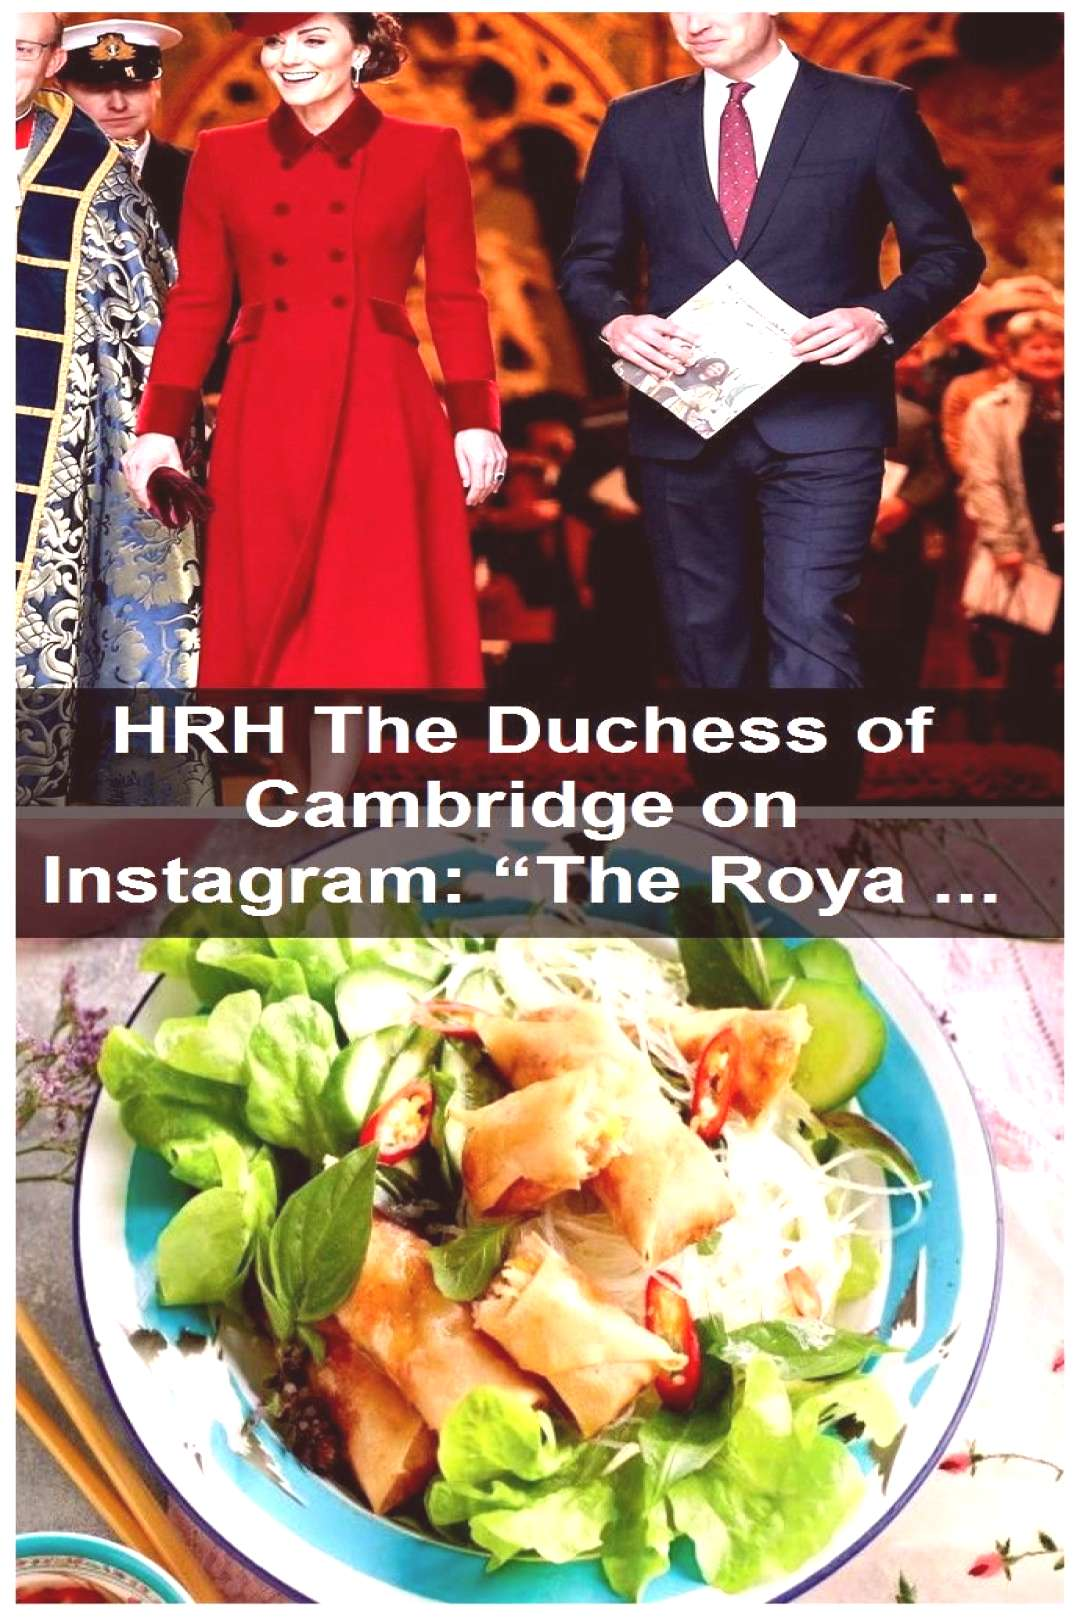 """HRH The Duchess of Cambridge on Instagram """"The Royal Family attended today's Commonwealth Da.."""